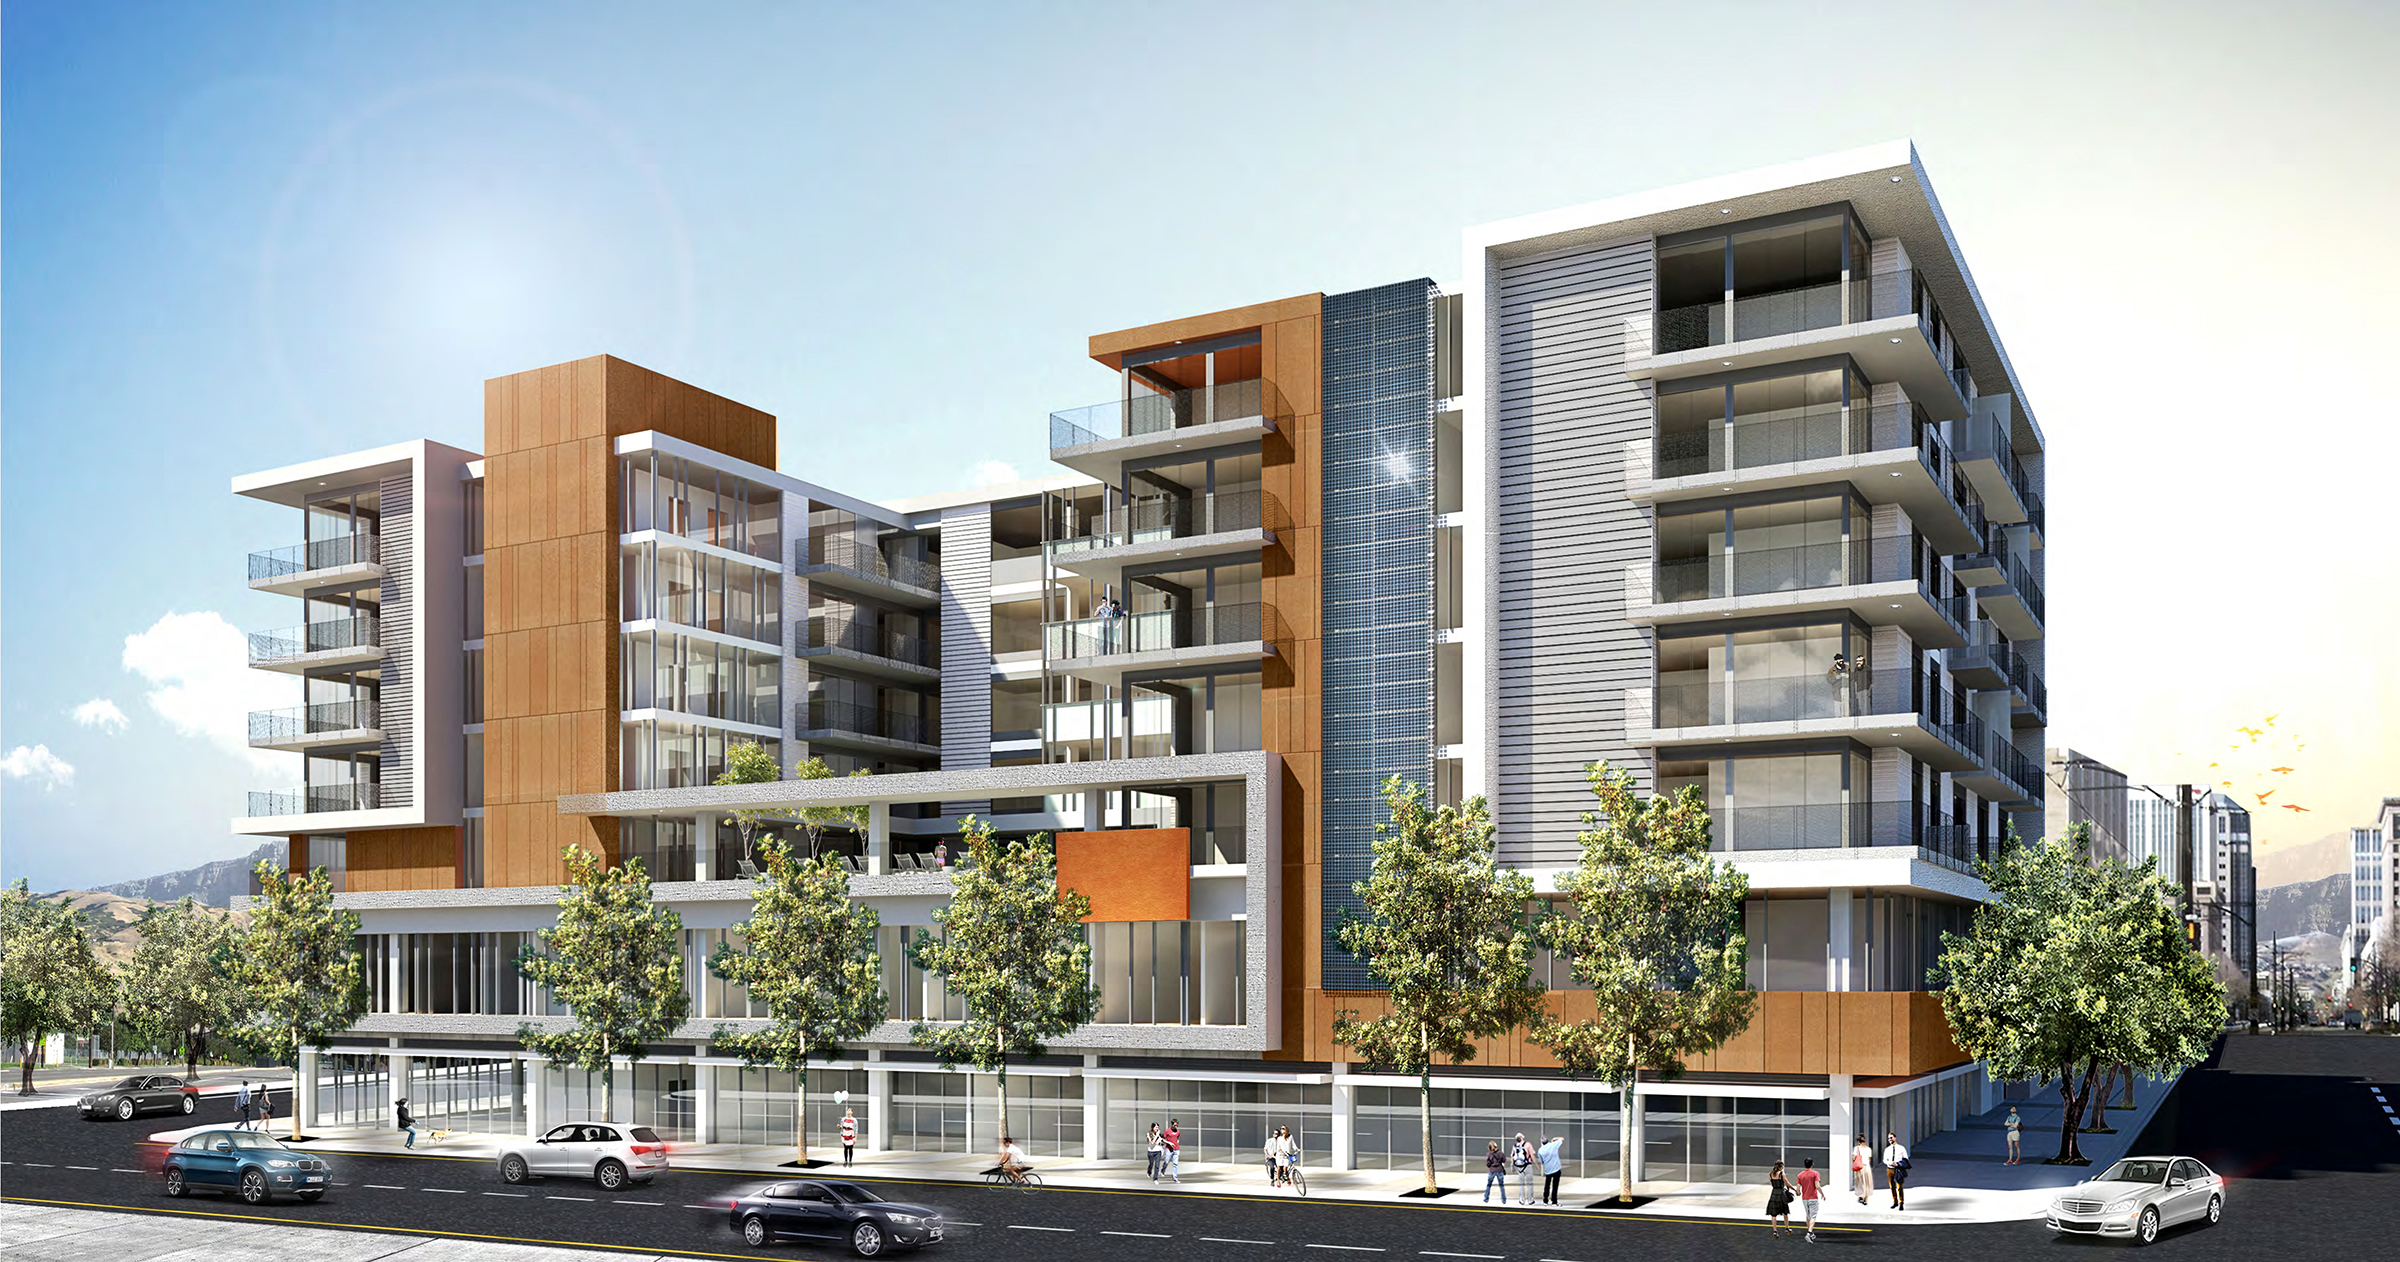 Construction Starts on 45M Mixeduse Project in East